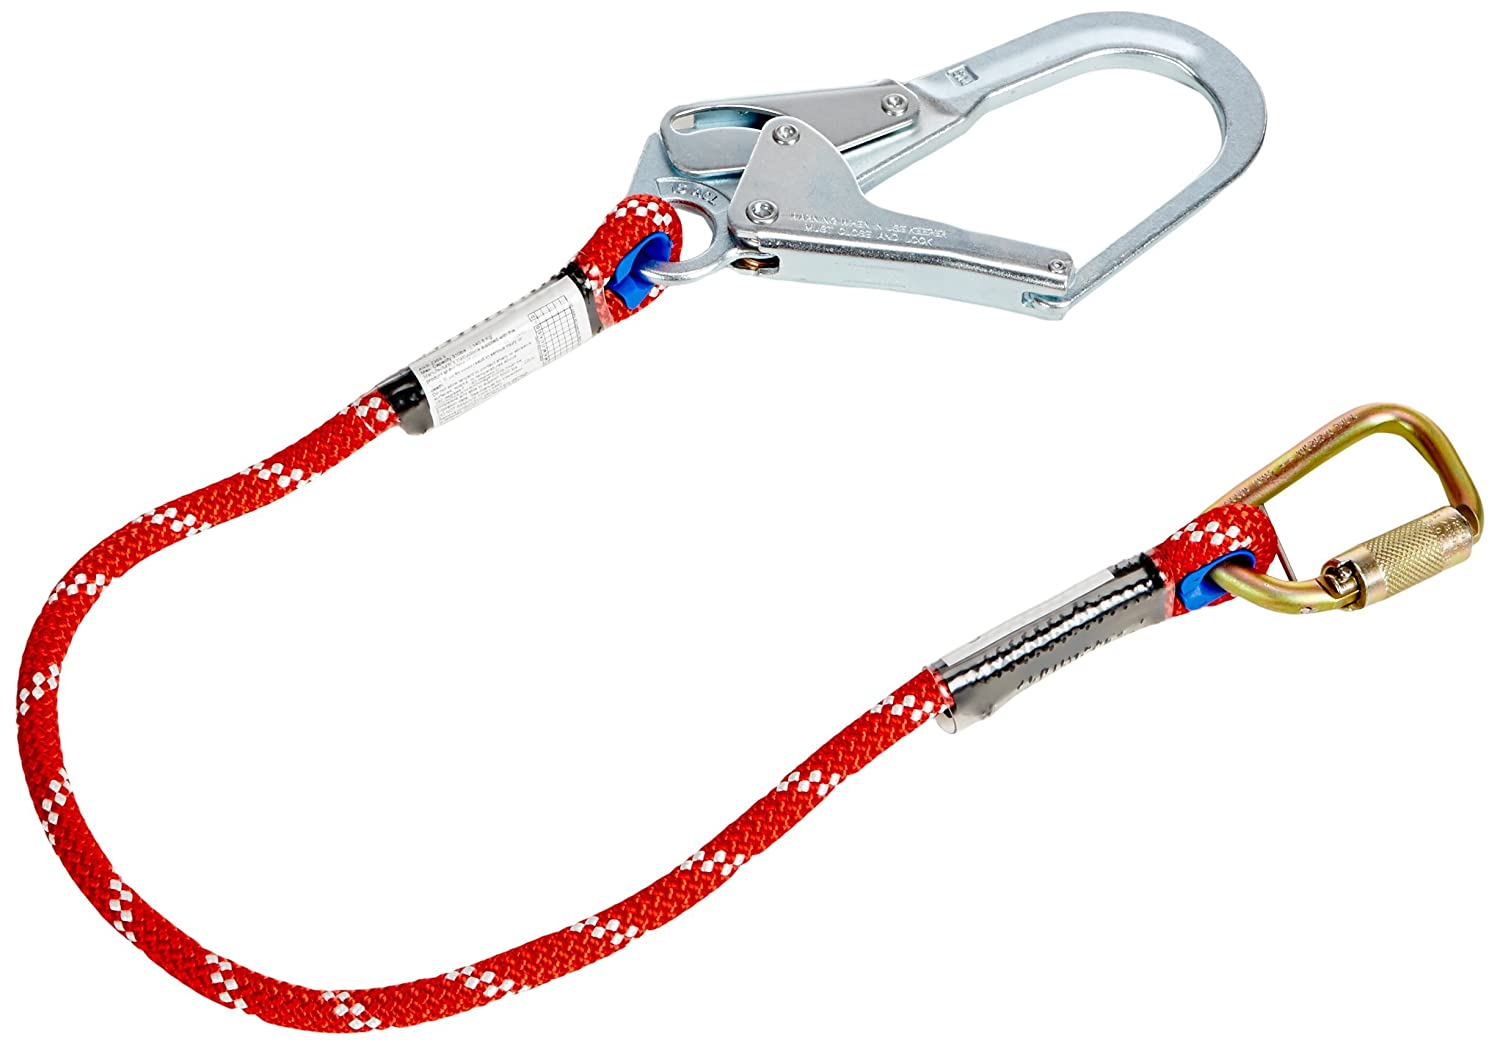 4 4/' Honeywell Safety Products USA Carabiner and Locking Rebar Hook Miller by Honeywell 1014936// Restraint Lanyard with Kernmantle Rope